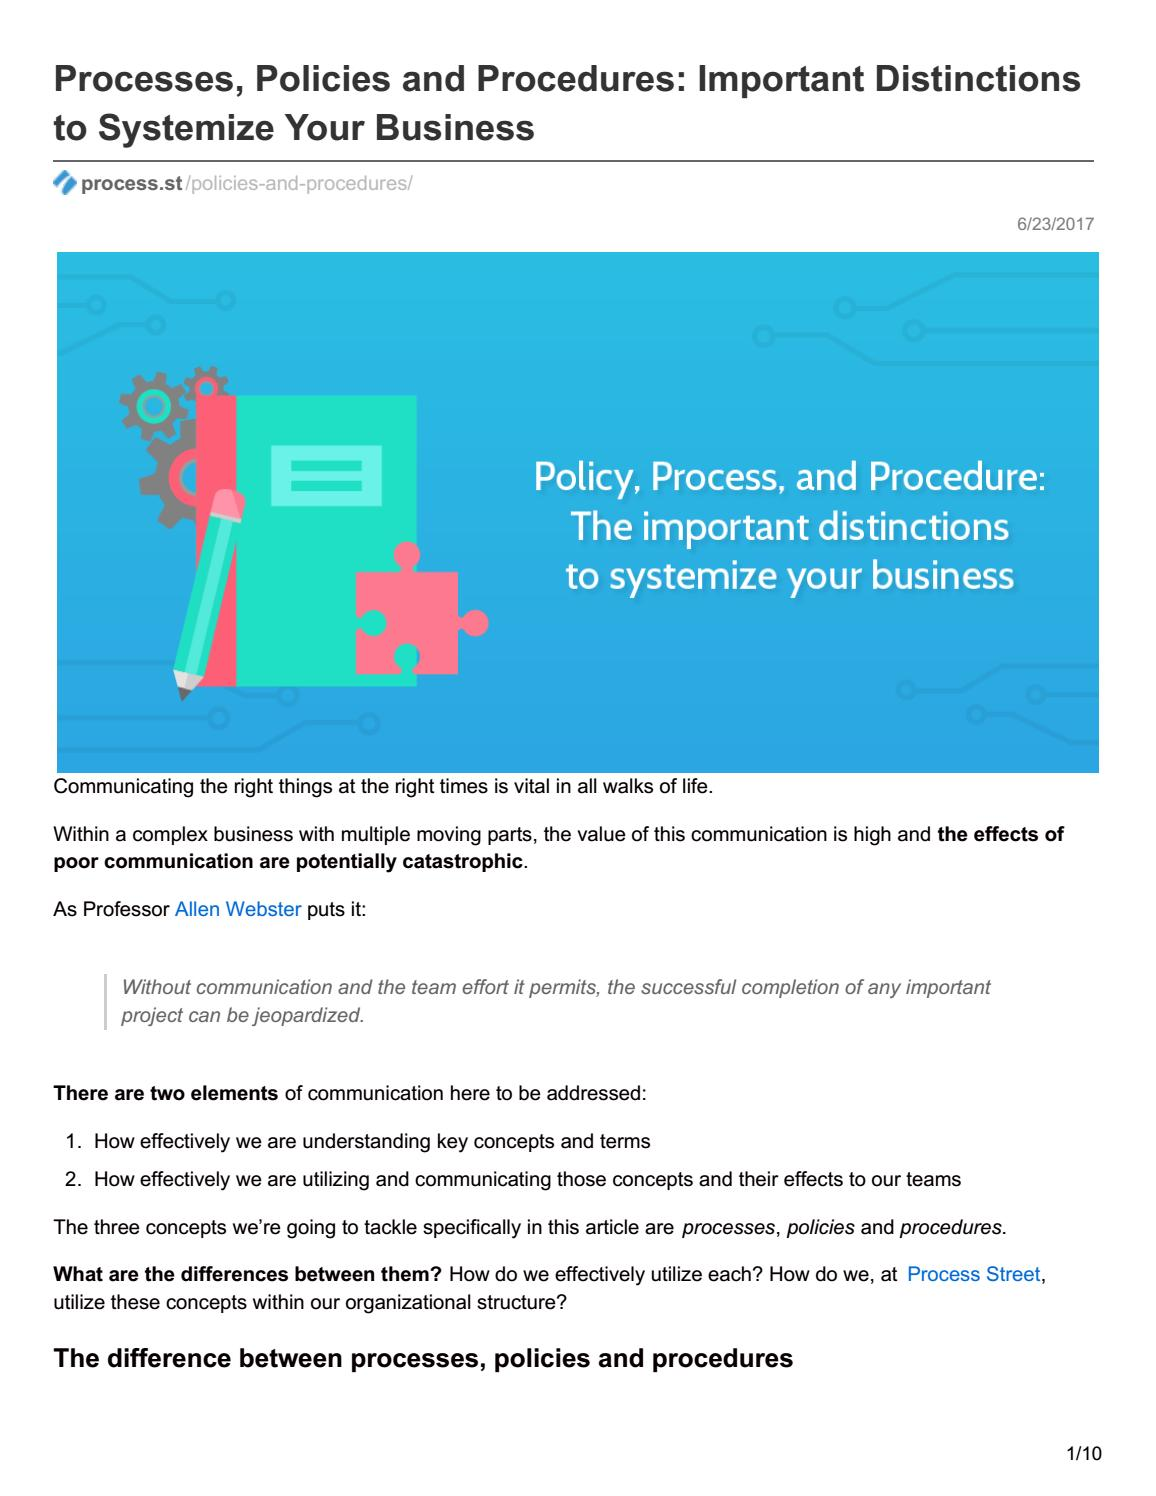 Processes, Policies and Procedures: Important Distinctions